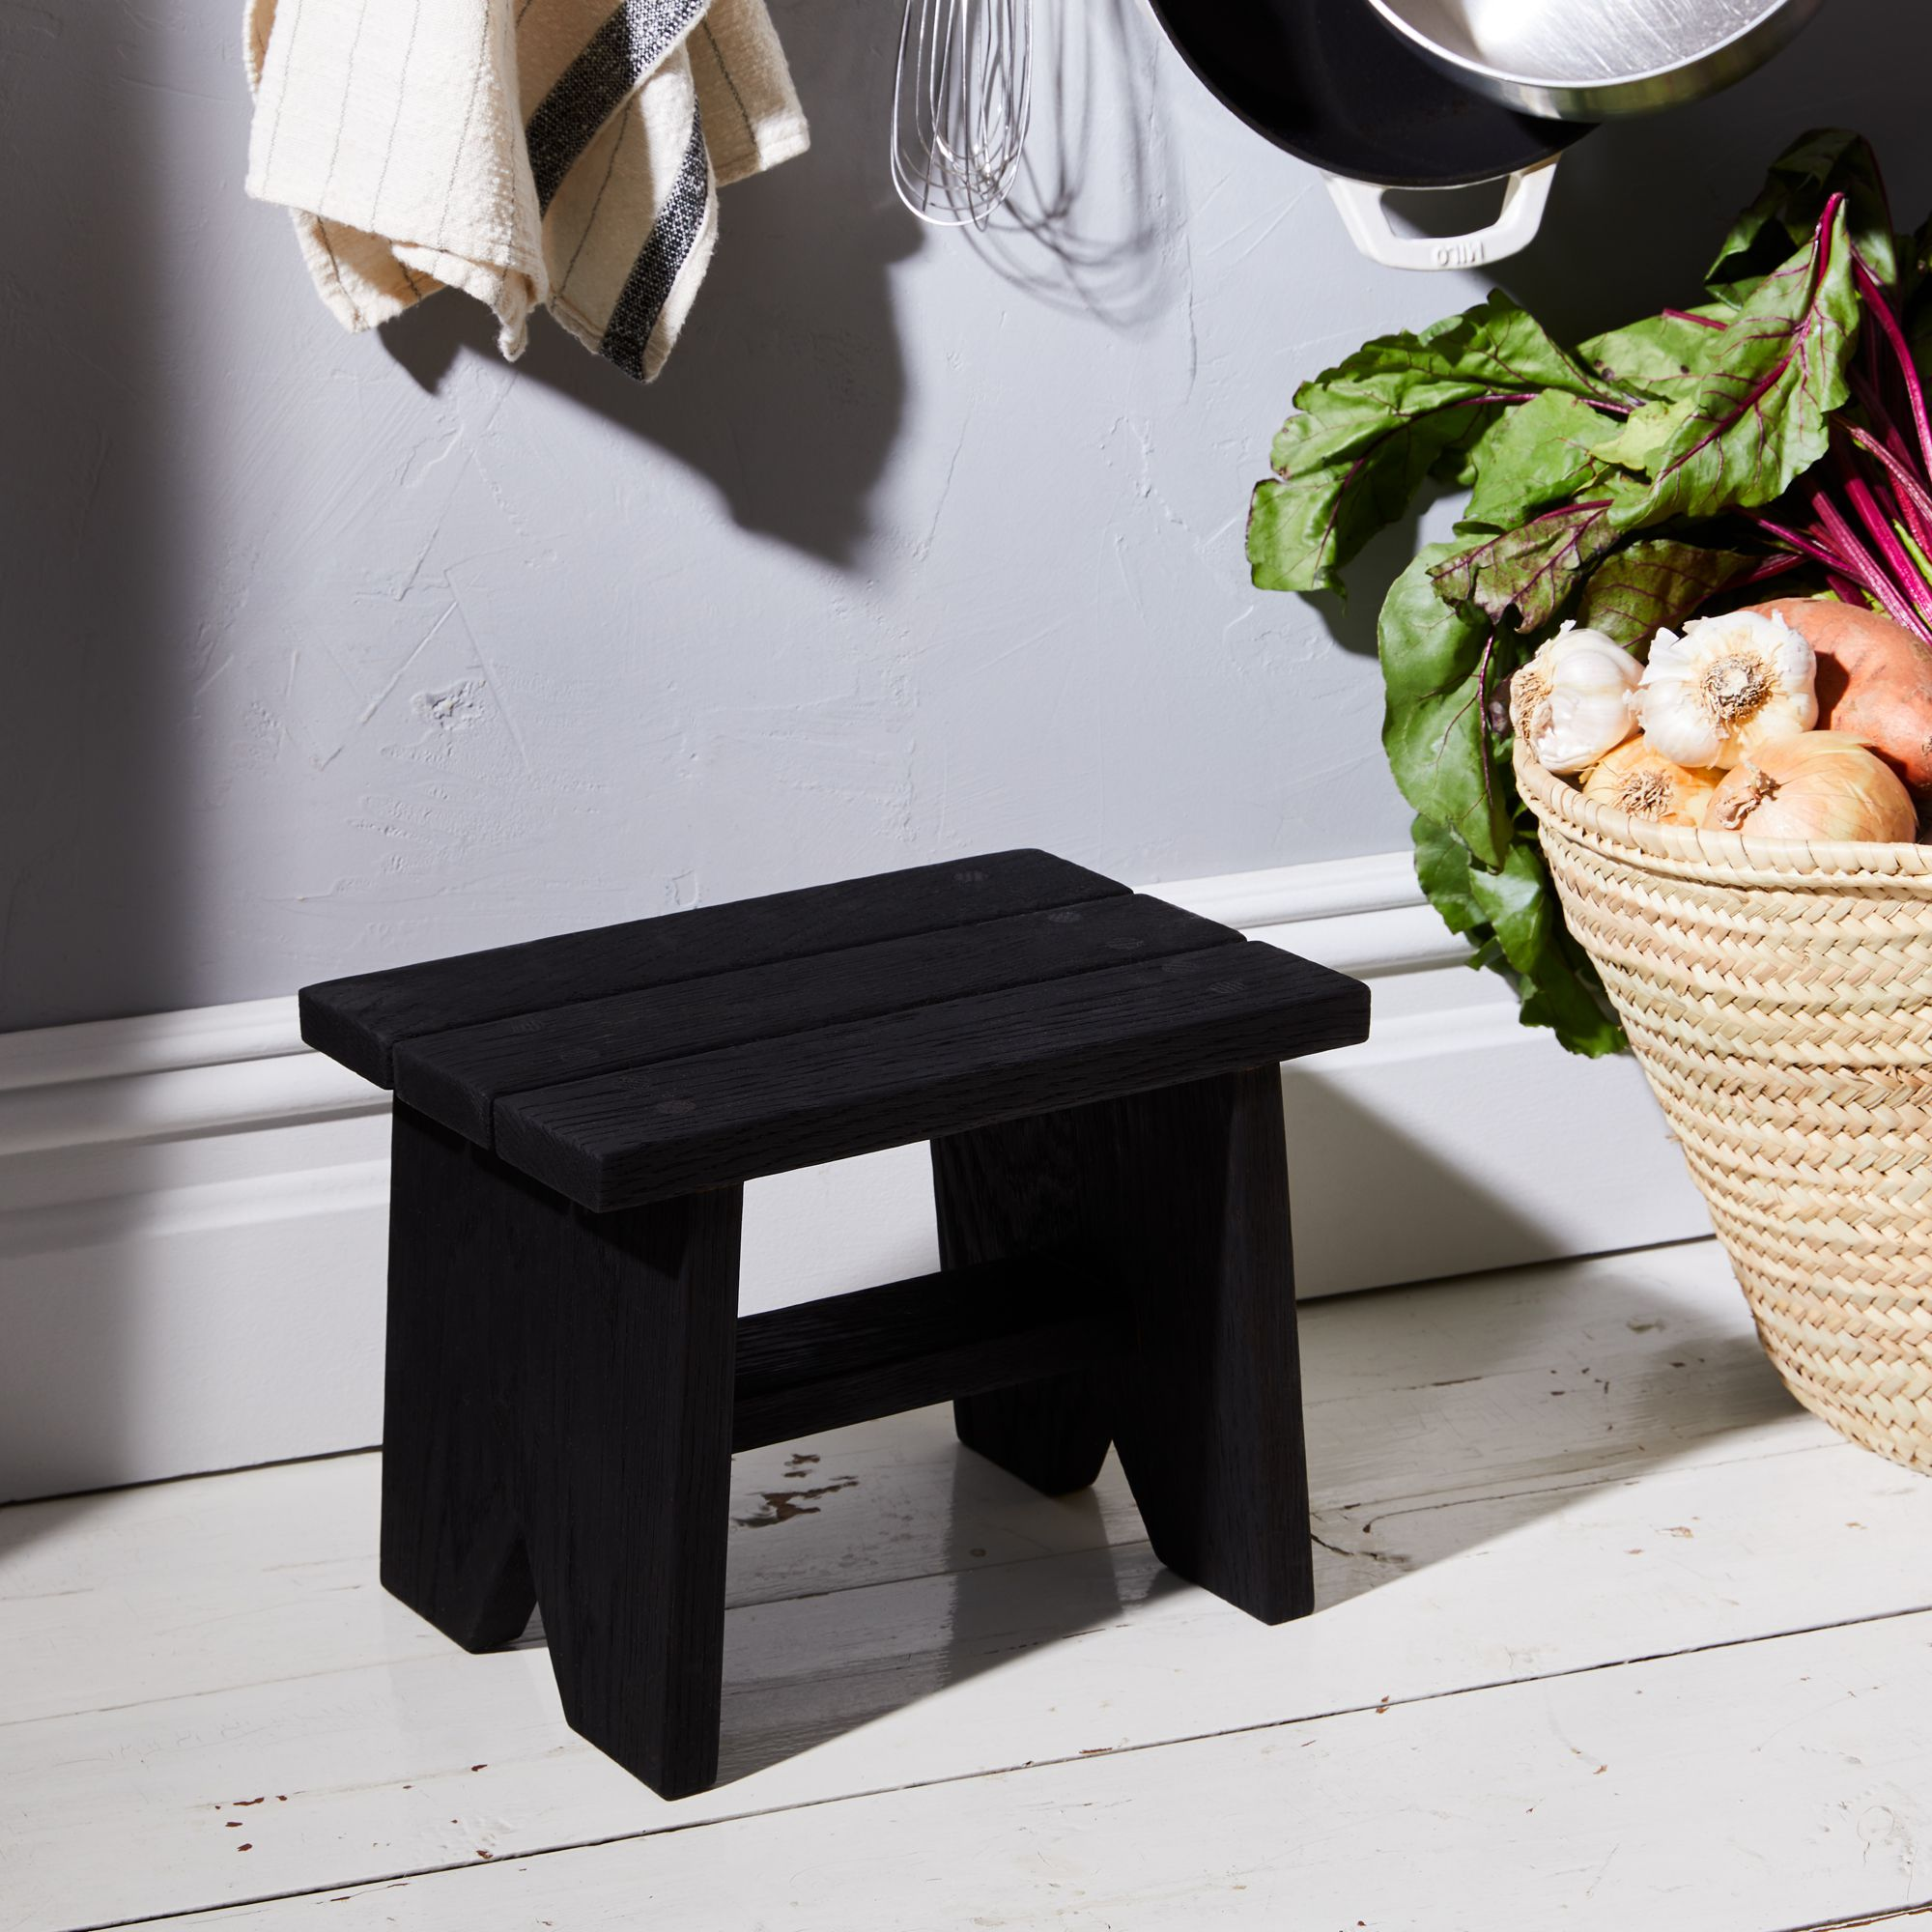 Peg and Awl Handcrafted Wooden Step Stool